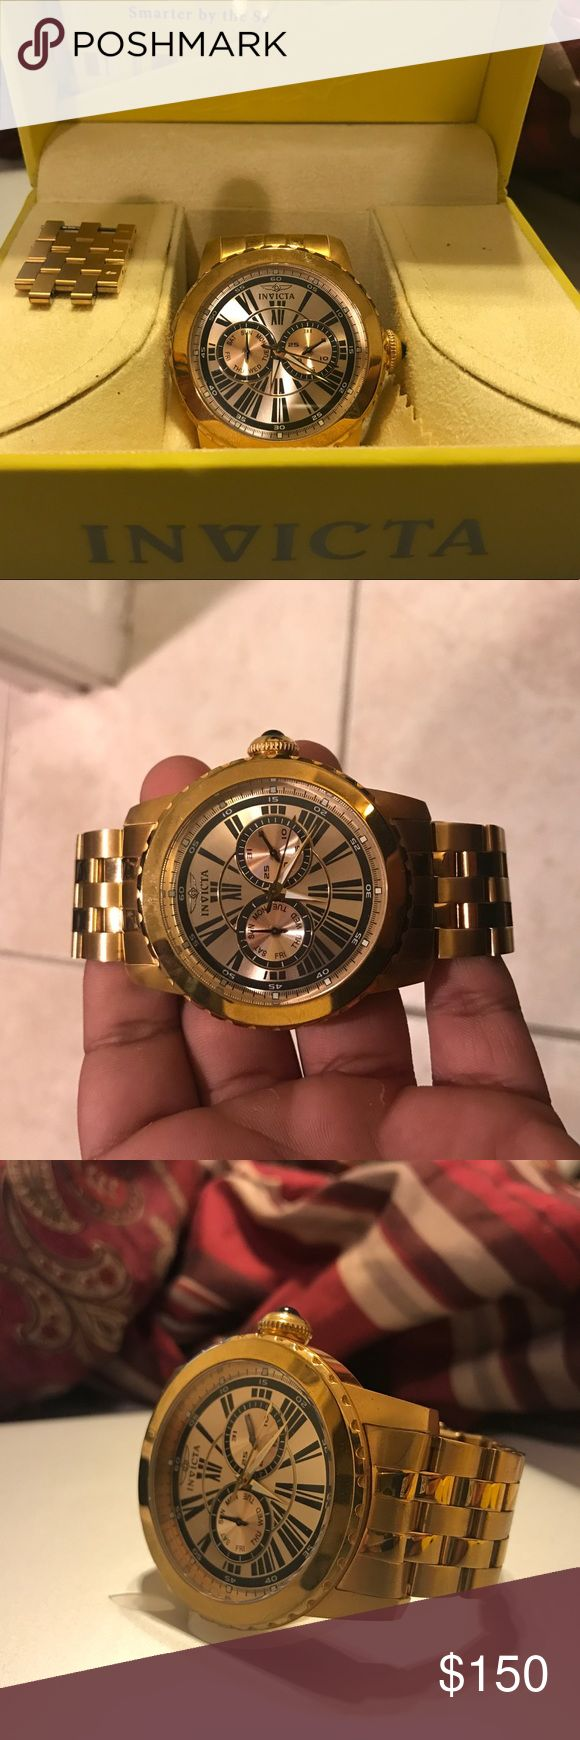 Invicta Men's Specialty model 14588 Gold Watch Looks new Includes box and all original documents Invicta Accessories Watches